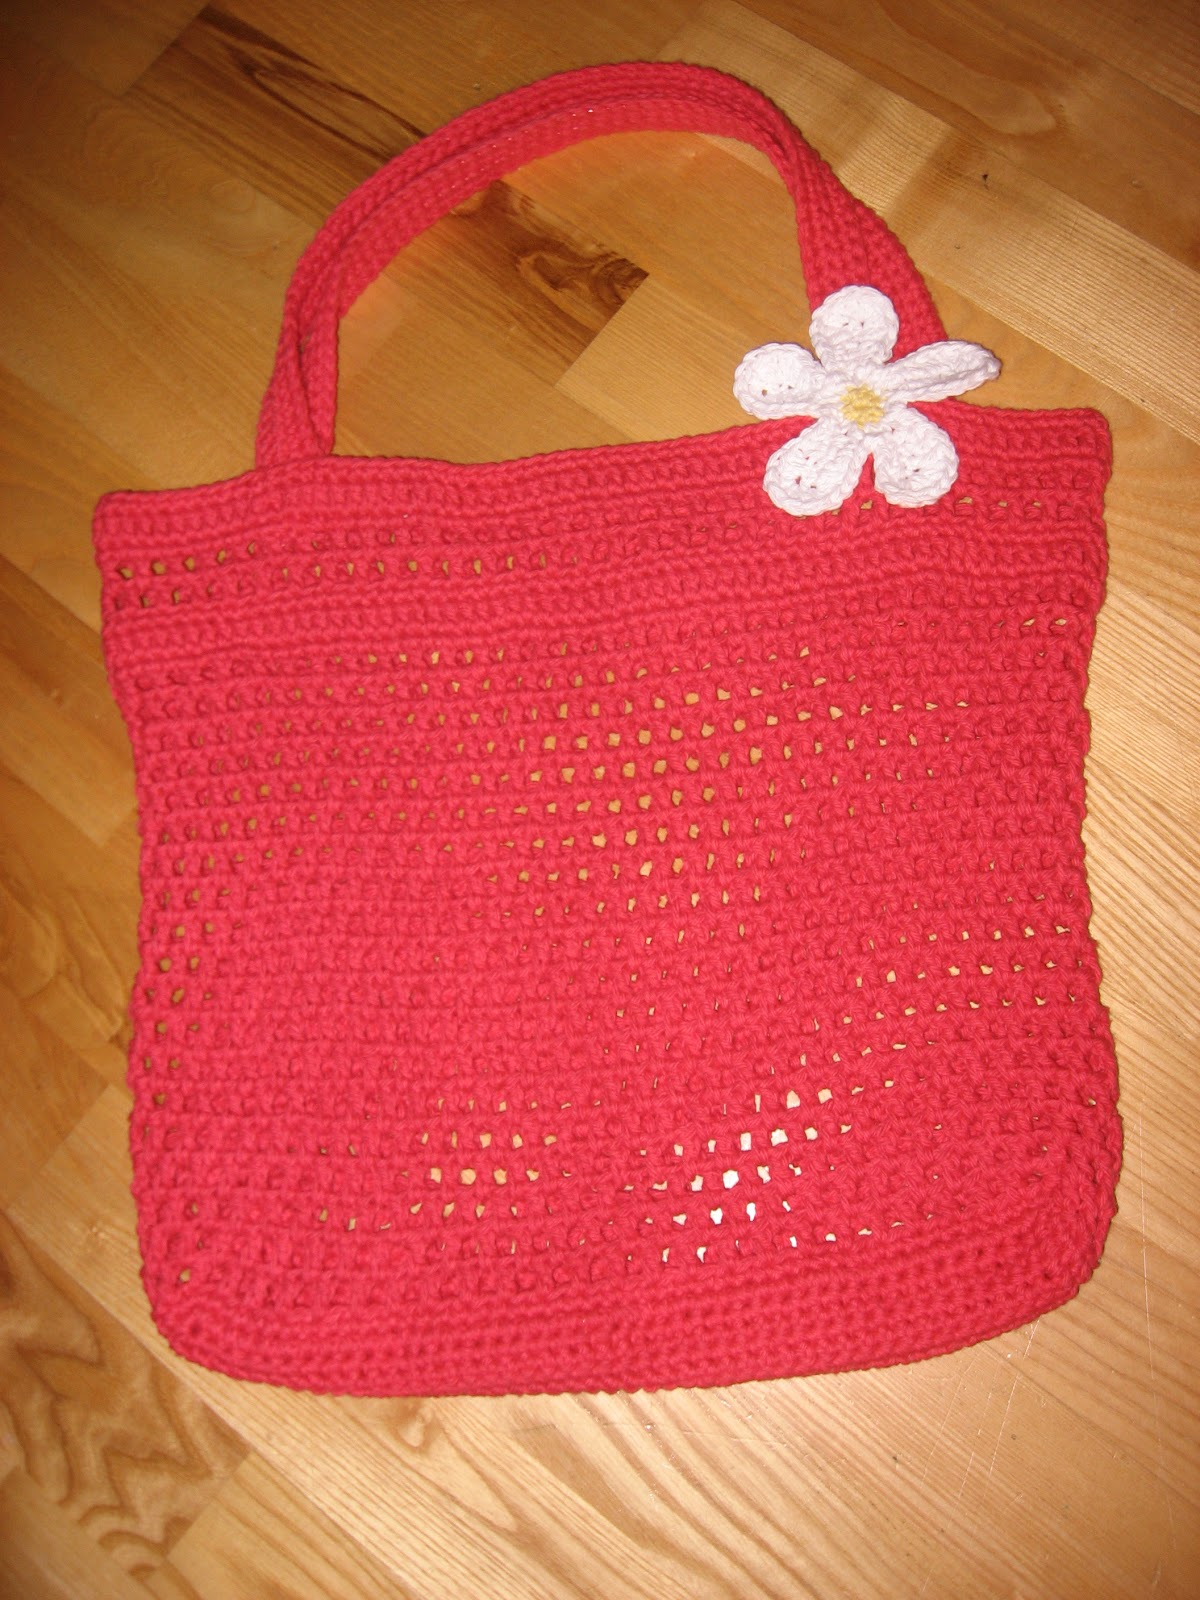 Crochet Tote Bag Tutorial Part 1 : Crochet Projects: Market Bags Part 2